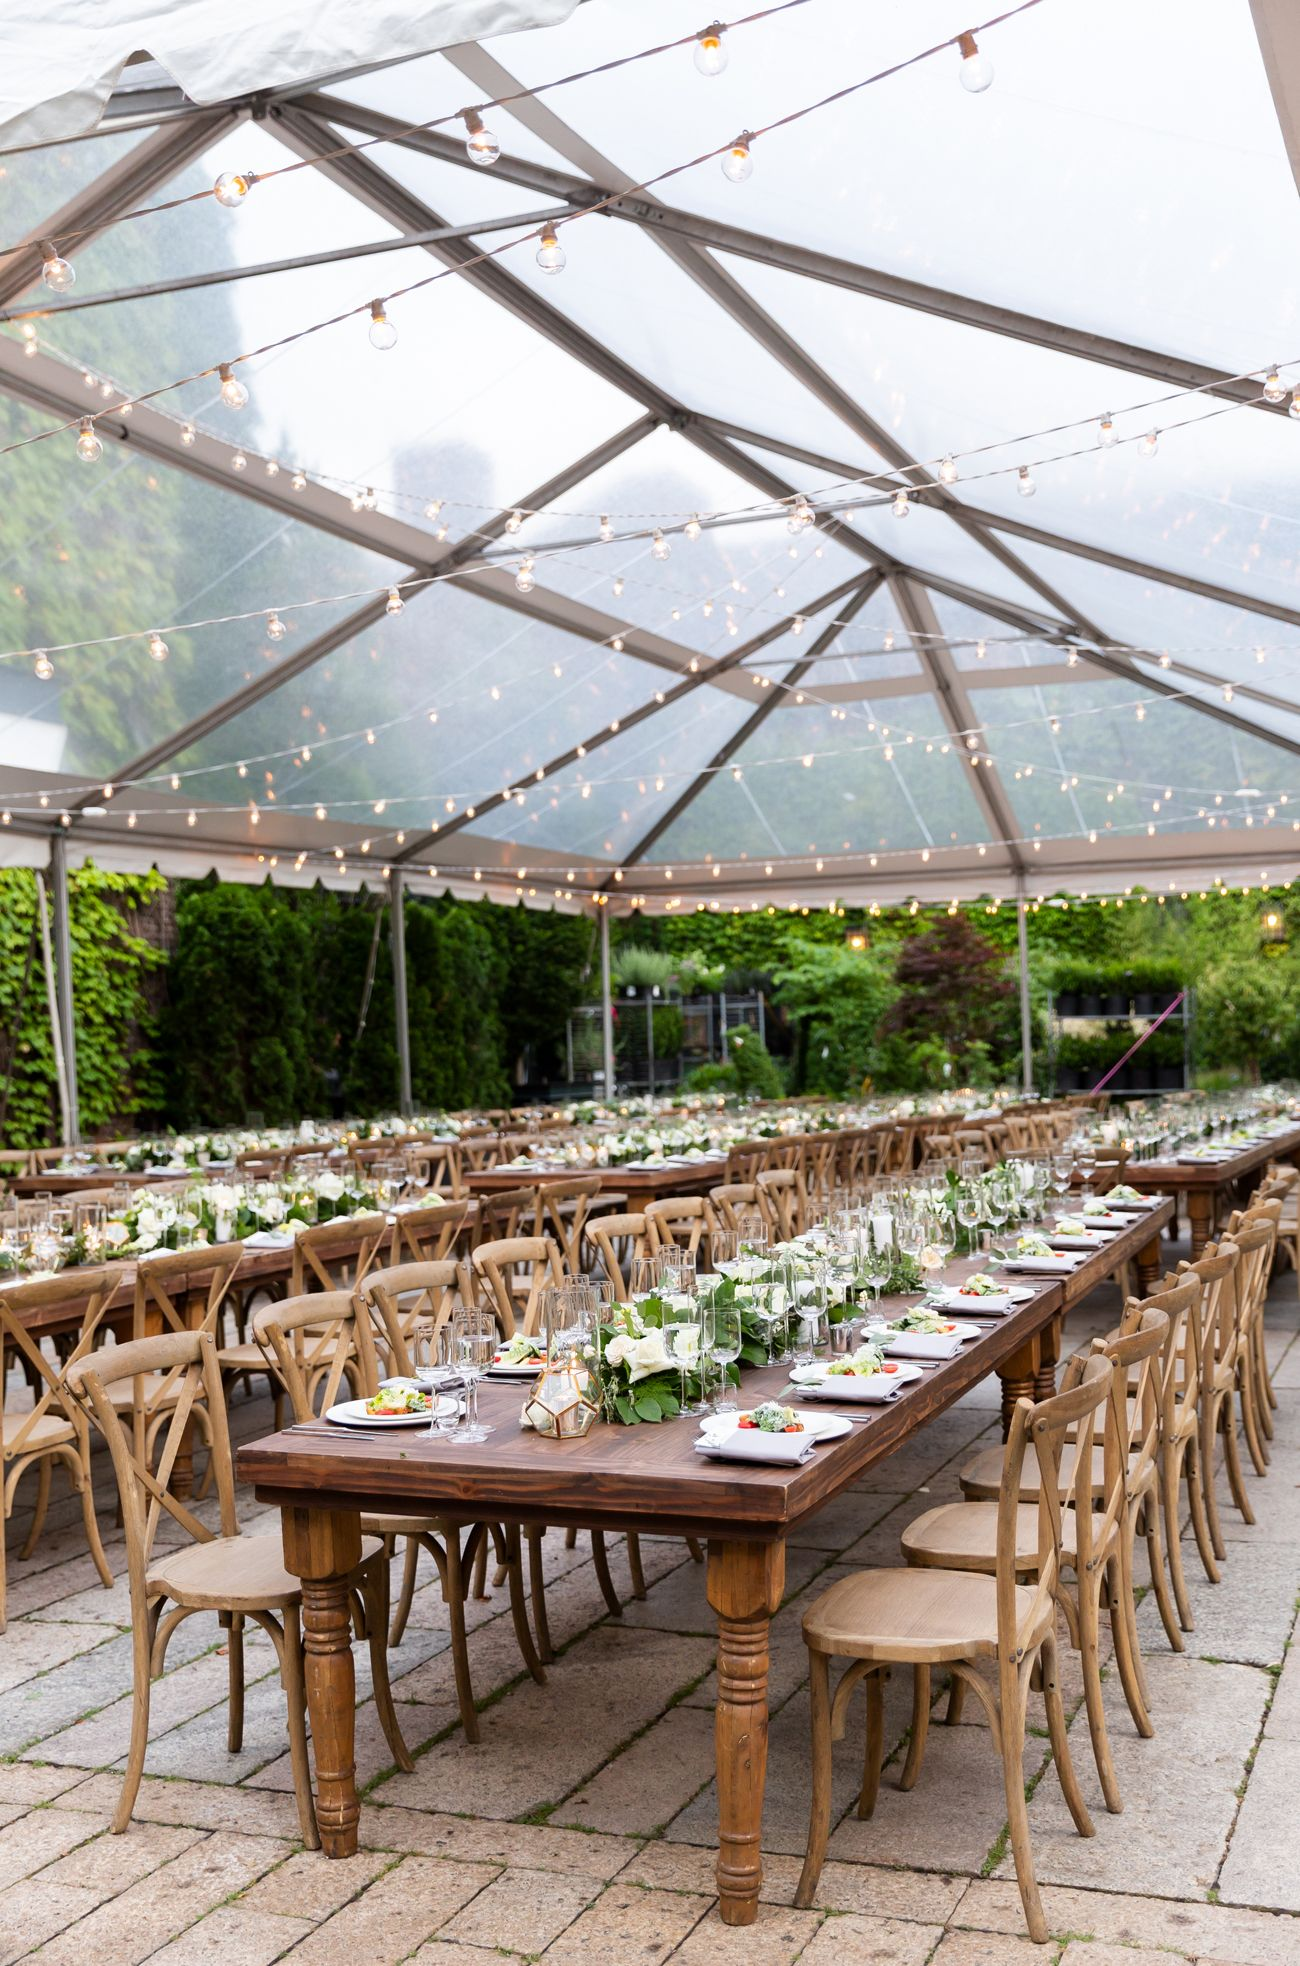 Outdoor wedding reception at The Foundry. Outdoor wedding